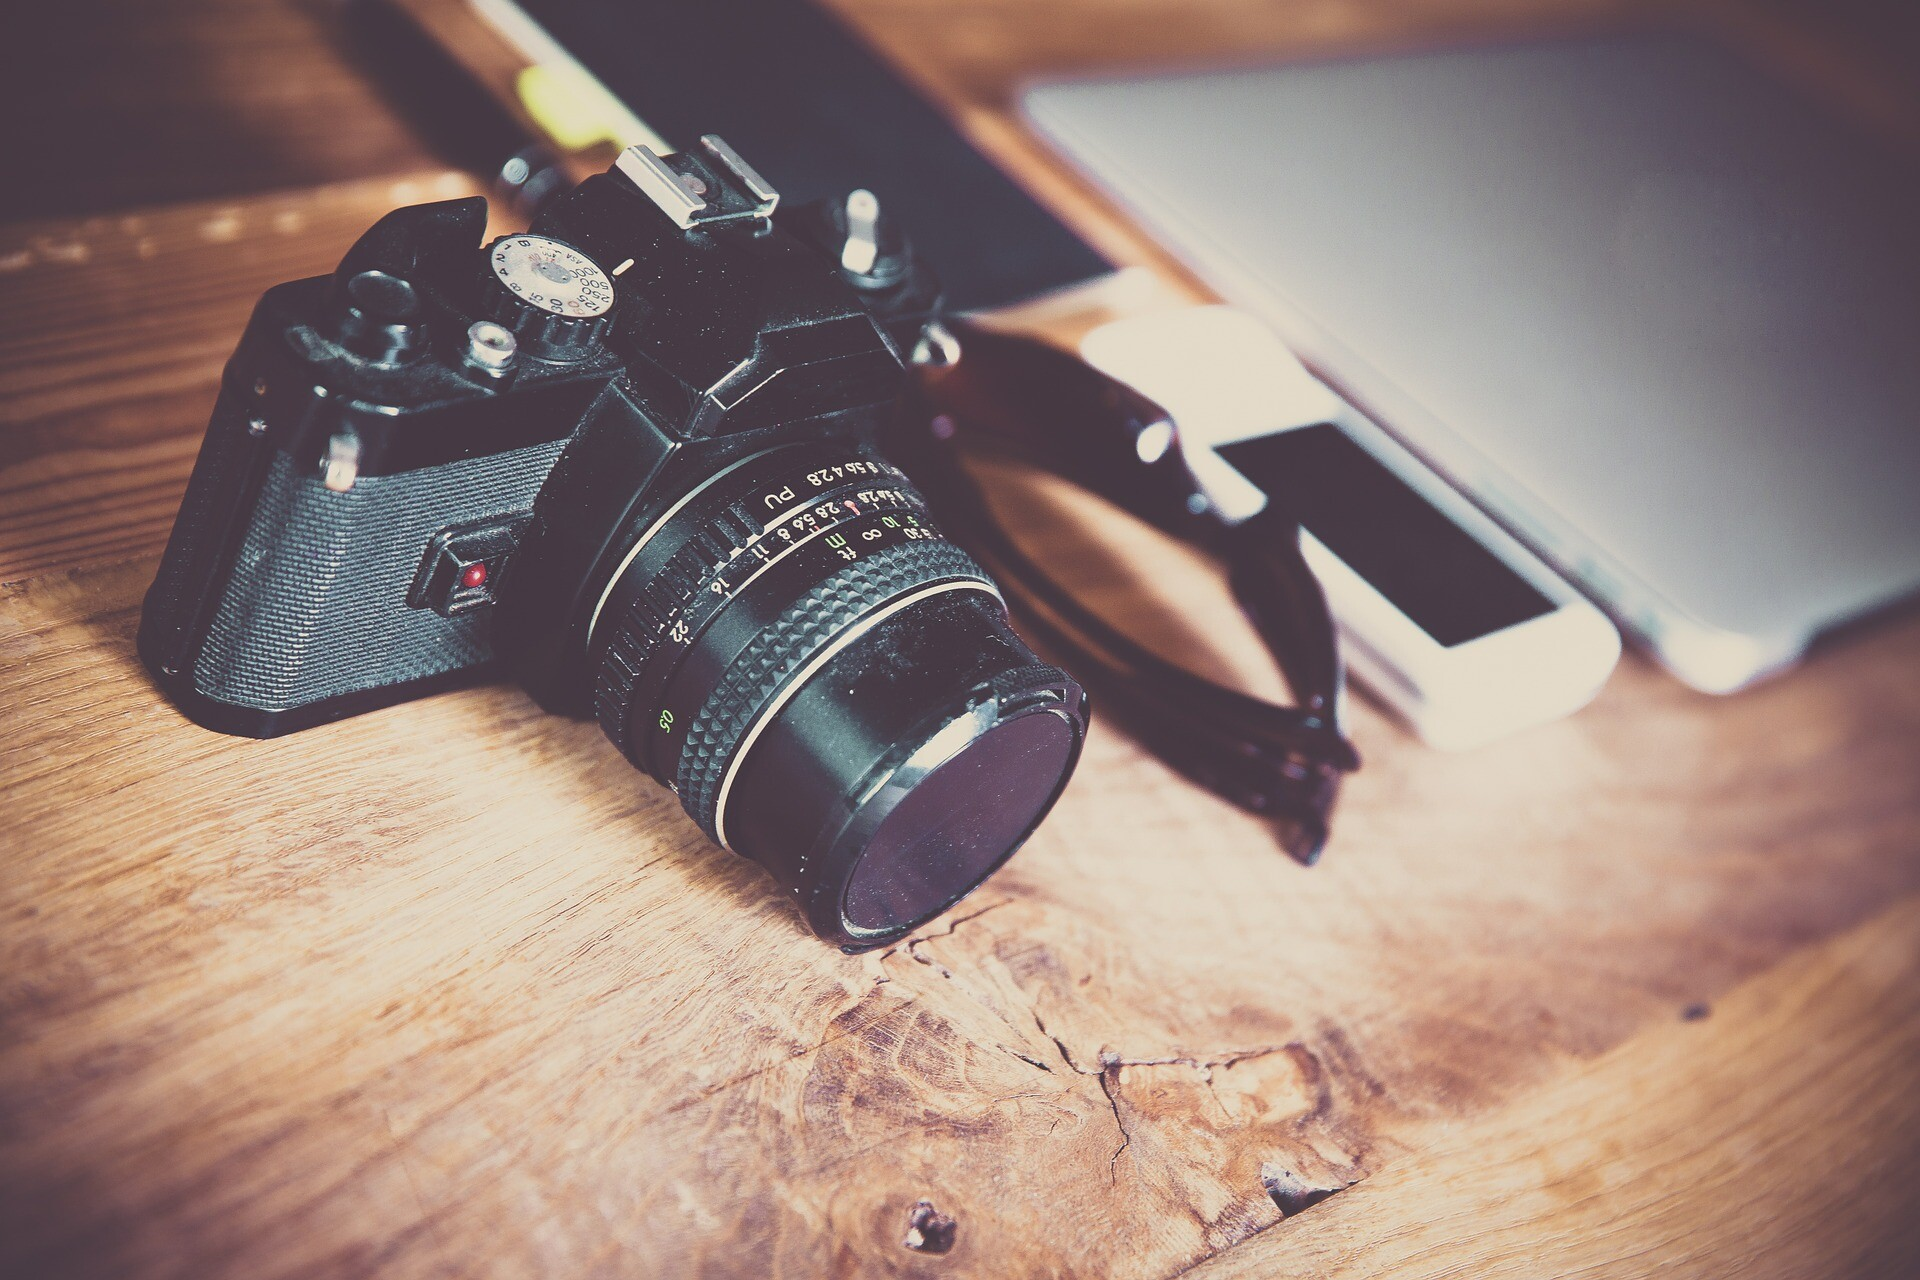 What camera do most wedding photographers use?